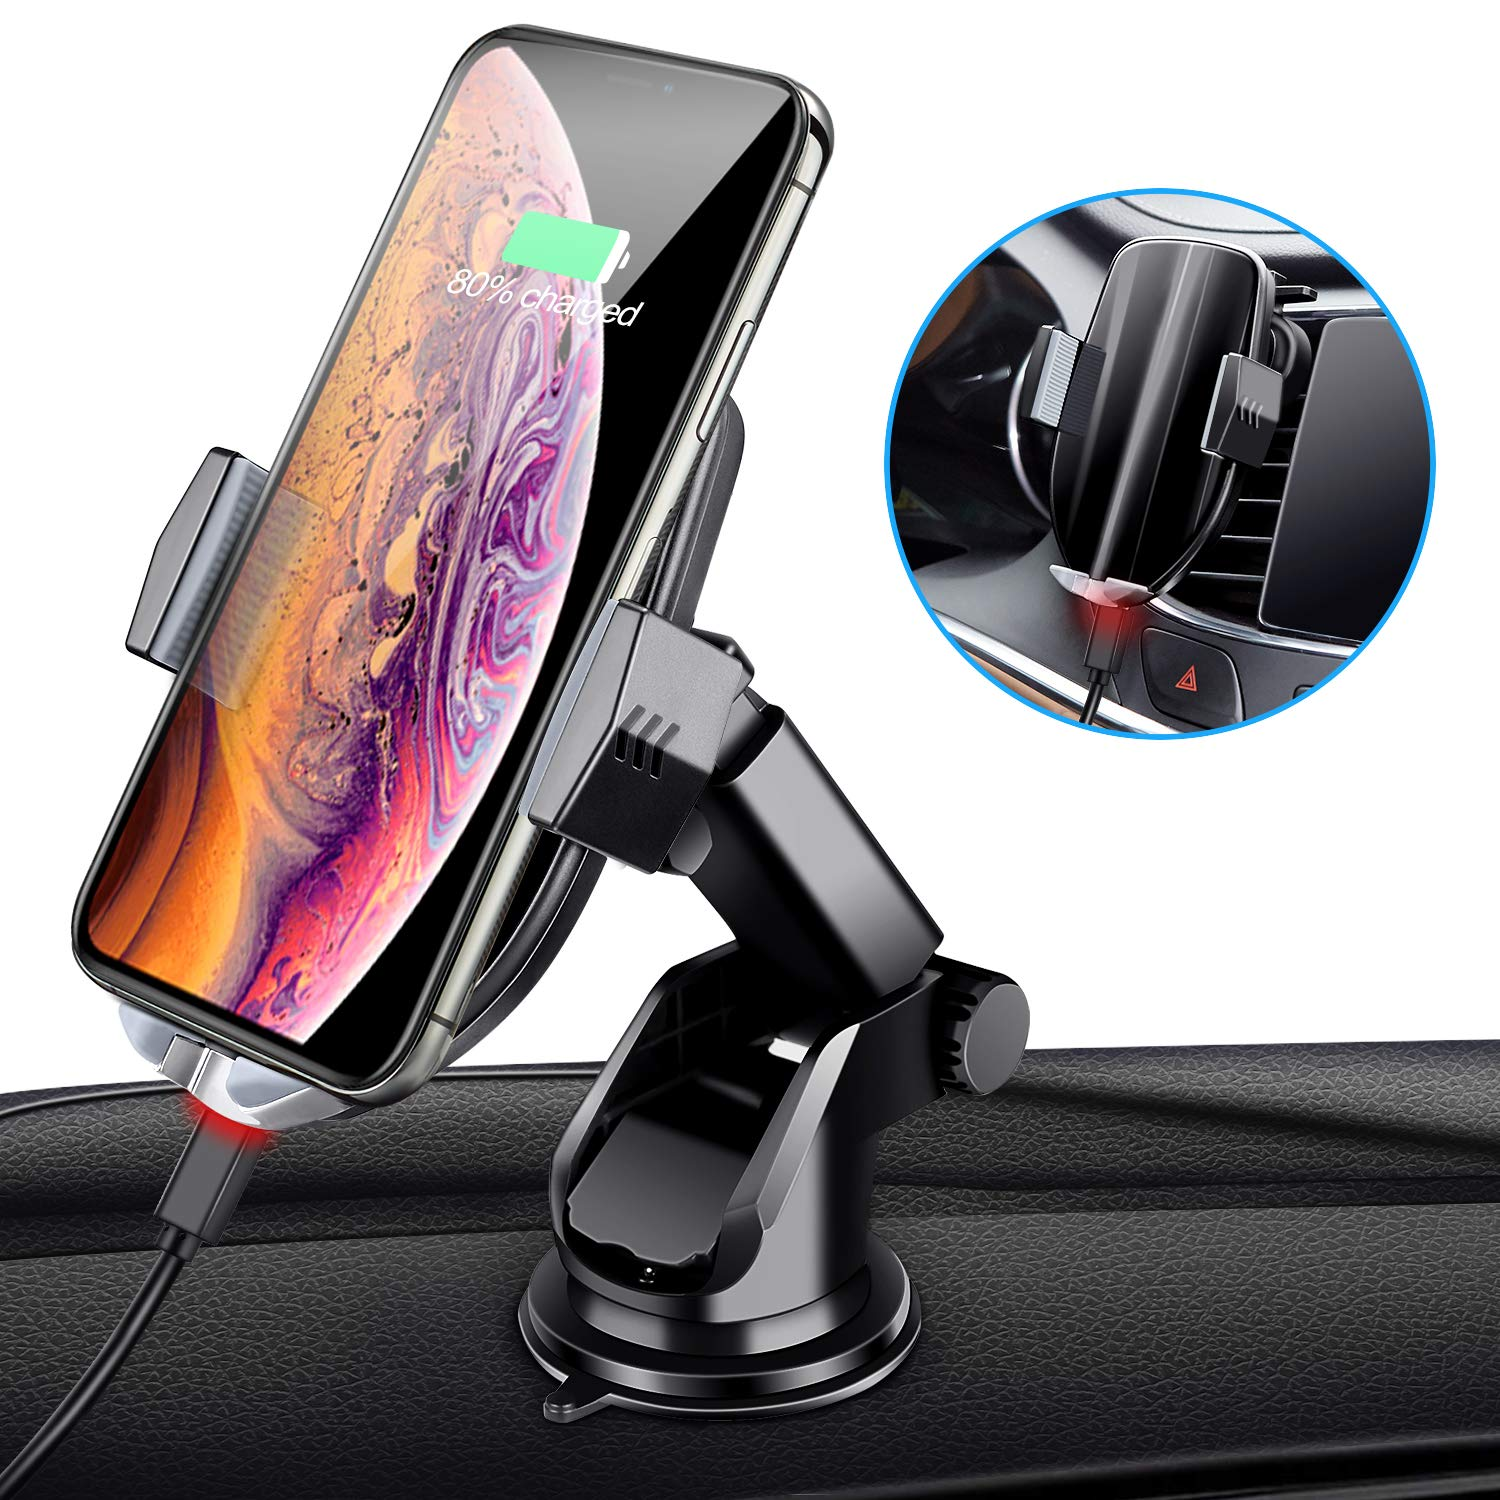 Wireless Car Charger Mount,  Automatic Sensing Clamping Car Mount Holder, 7.5w/10w Qi Fast Charging Car Phone Holder Compatible with iPhone Xs/Xs Max/XR/X/ 8/8 Plus, Samsung Galaxy S10 /S10+/S9